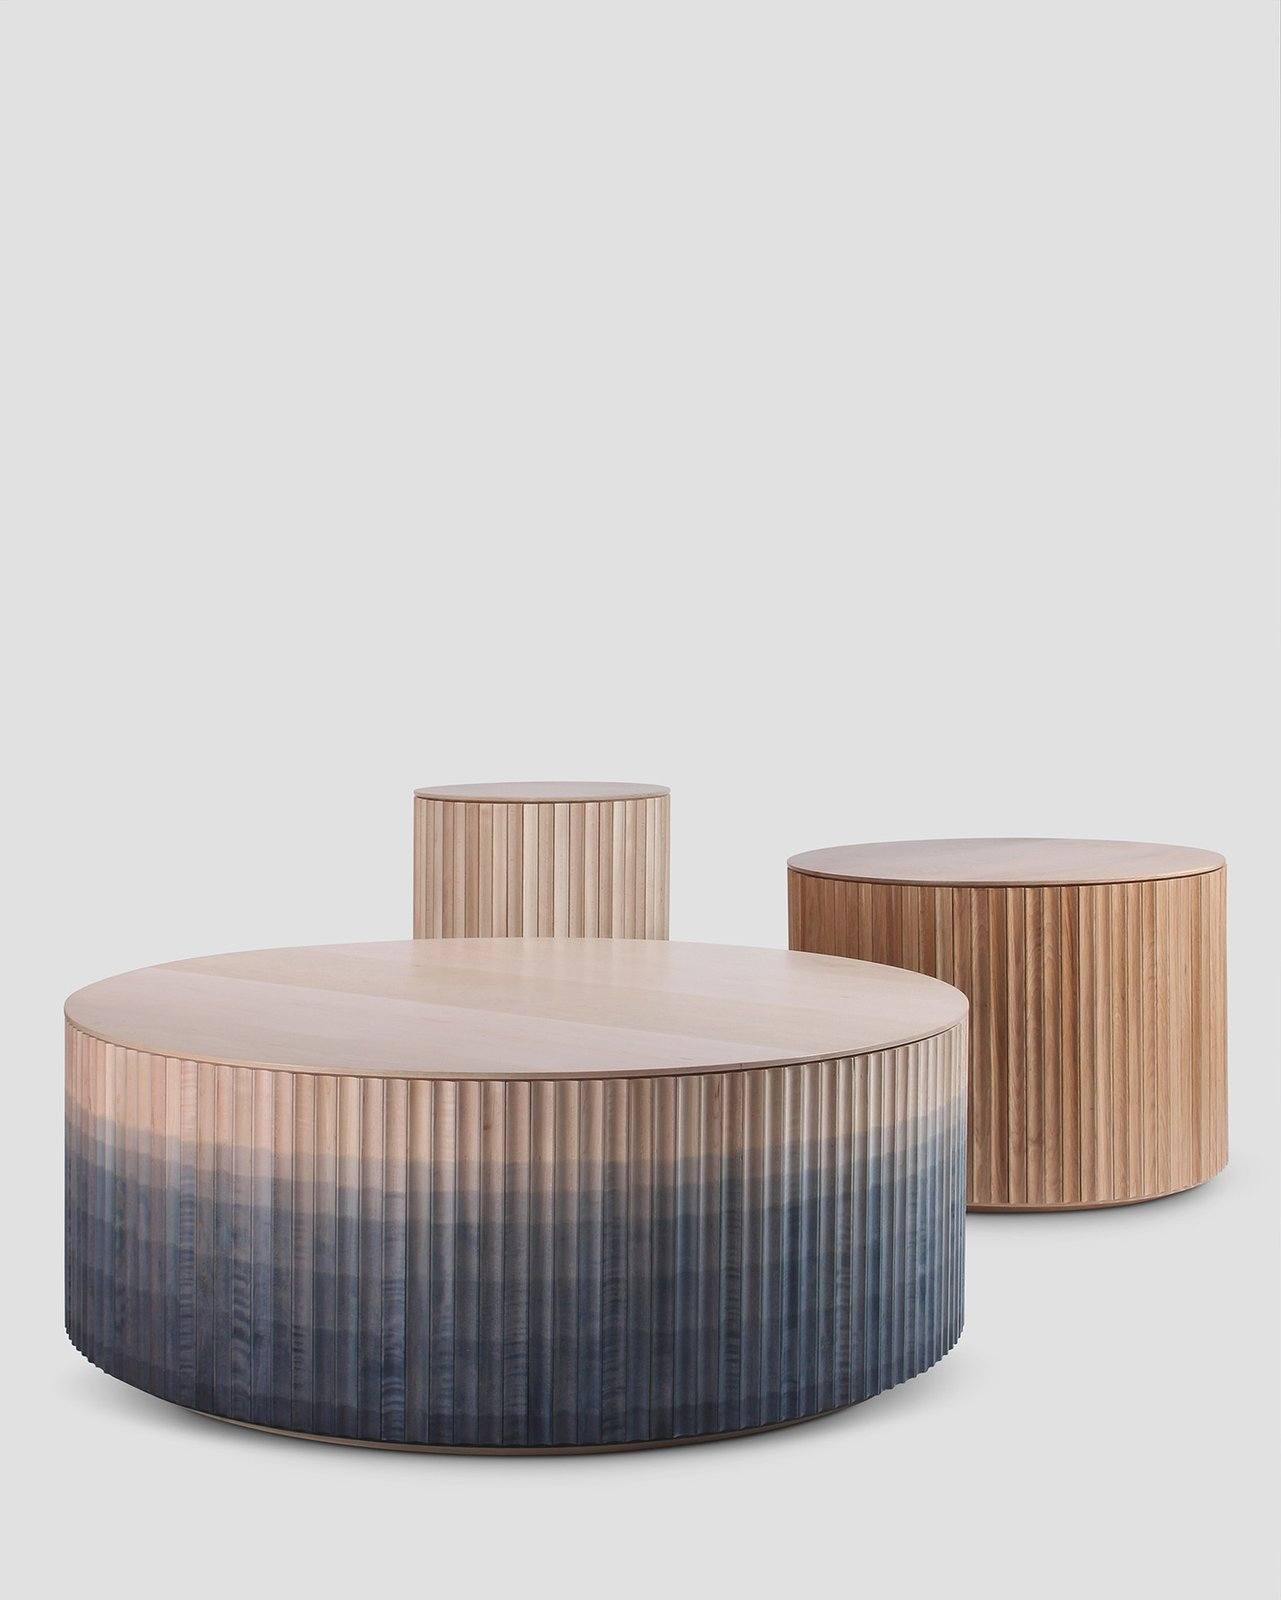 The Pilar Tables, Group 2 by INDO-